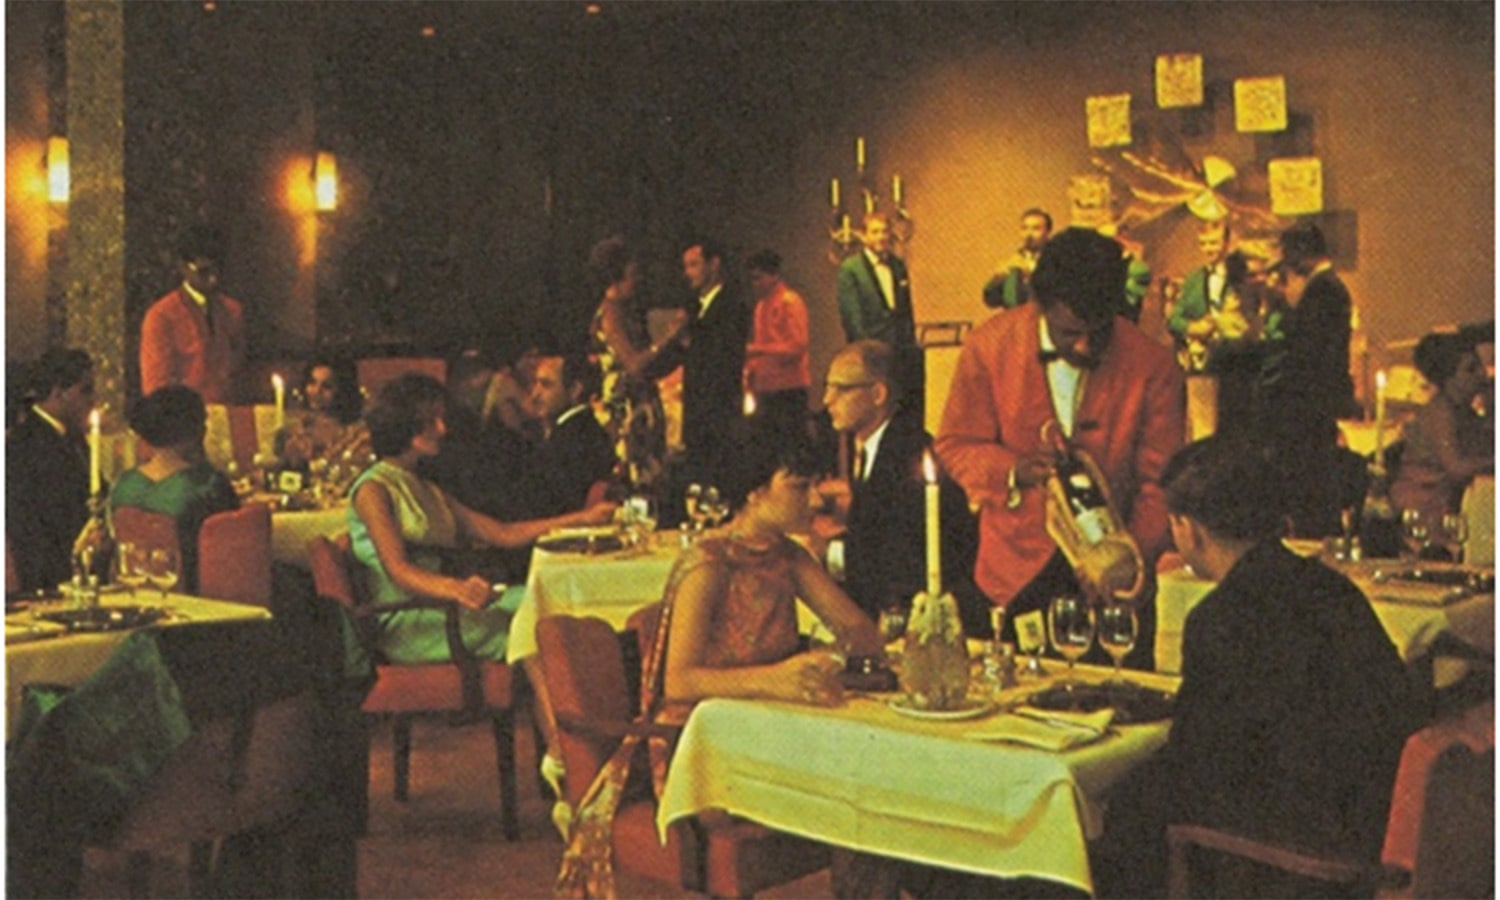 Locals and foreigners wine and dine at a restaurant at the Beach Luxury Hotel in 1969. The hotel was built laterally to a mangrove forest in the Queens Road area.